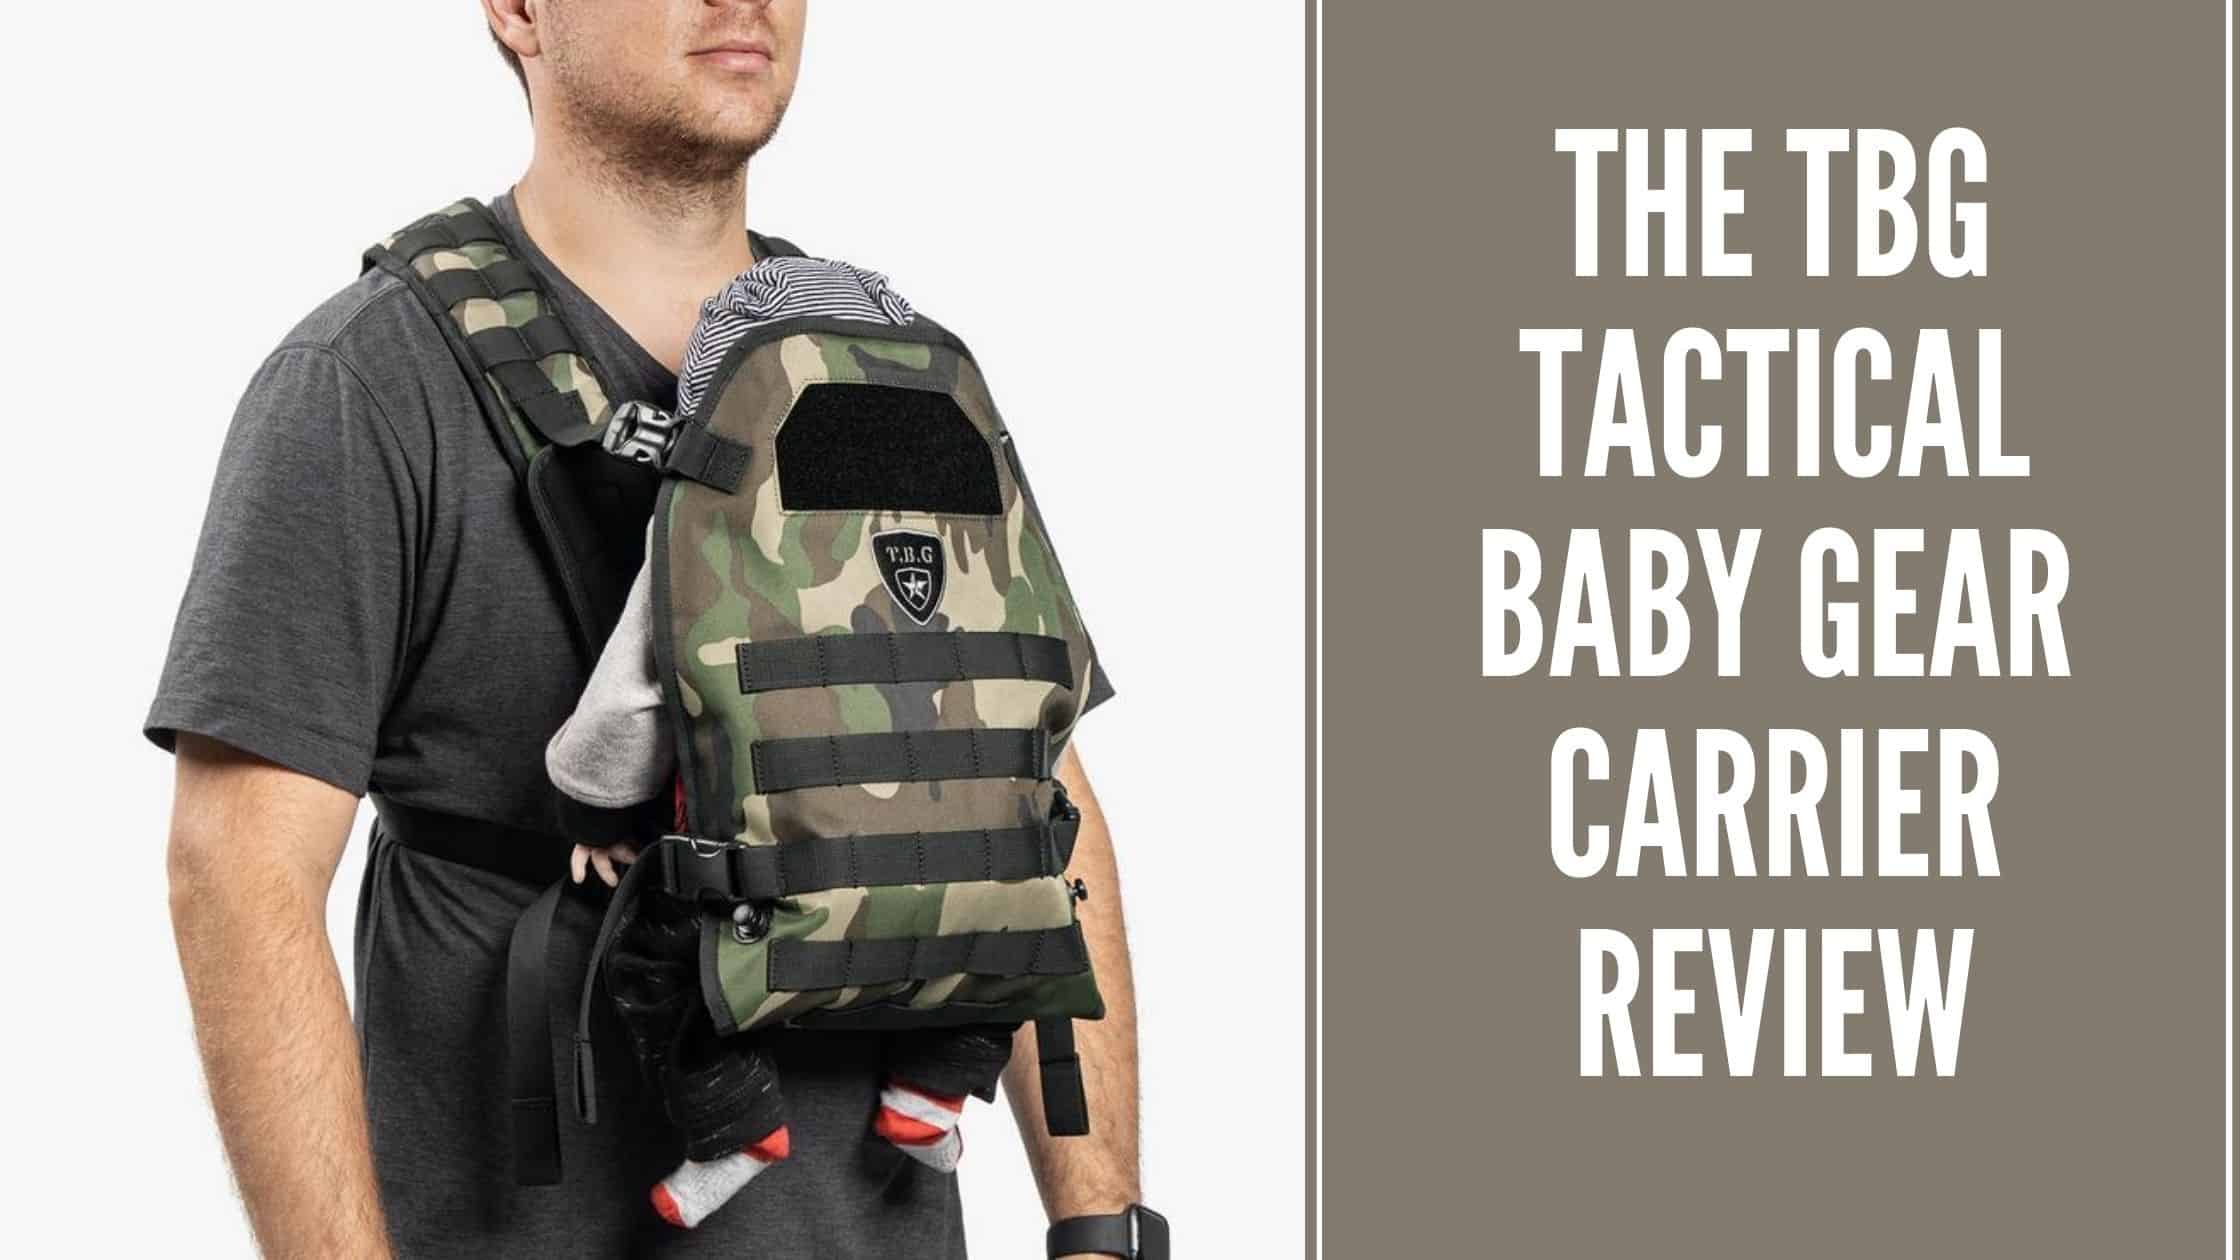 The TBG Tactical baby gear carrier review